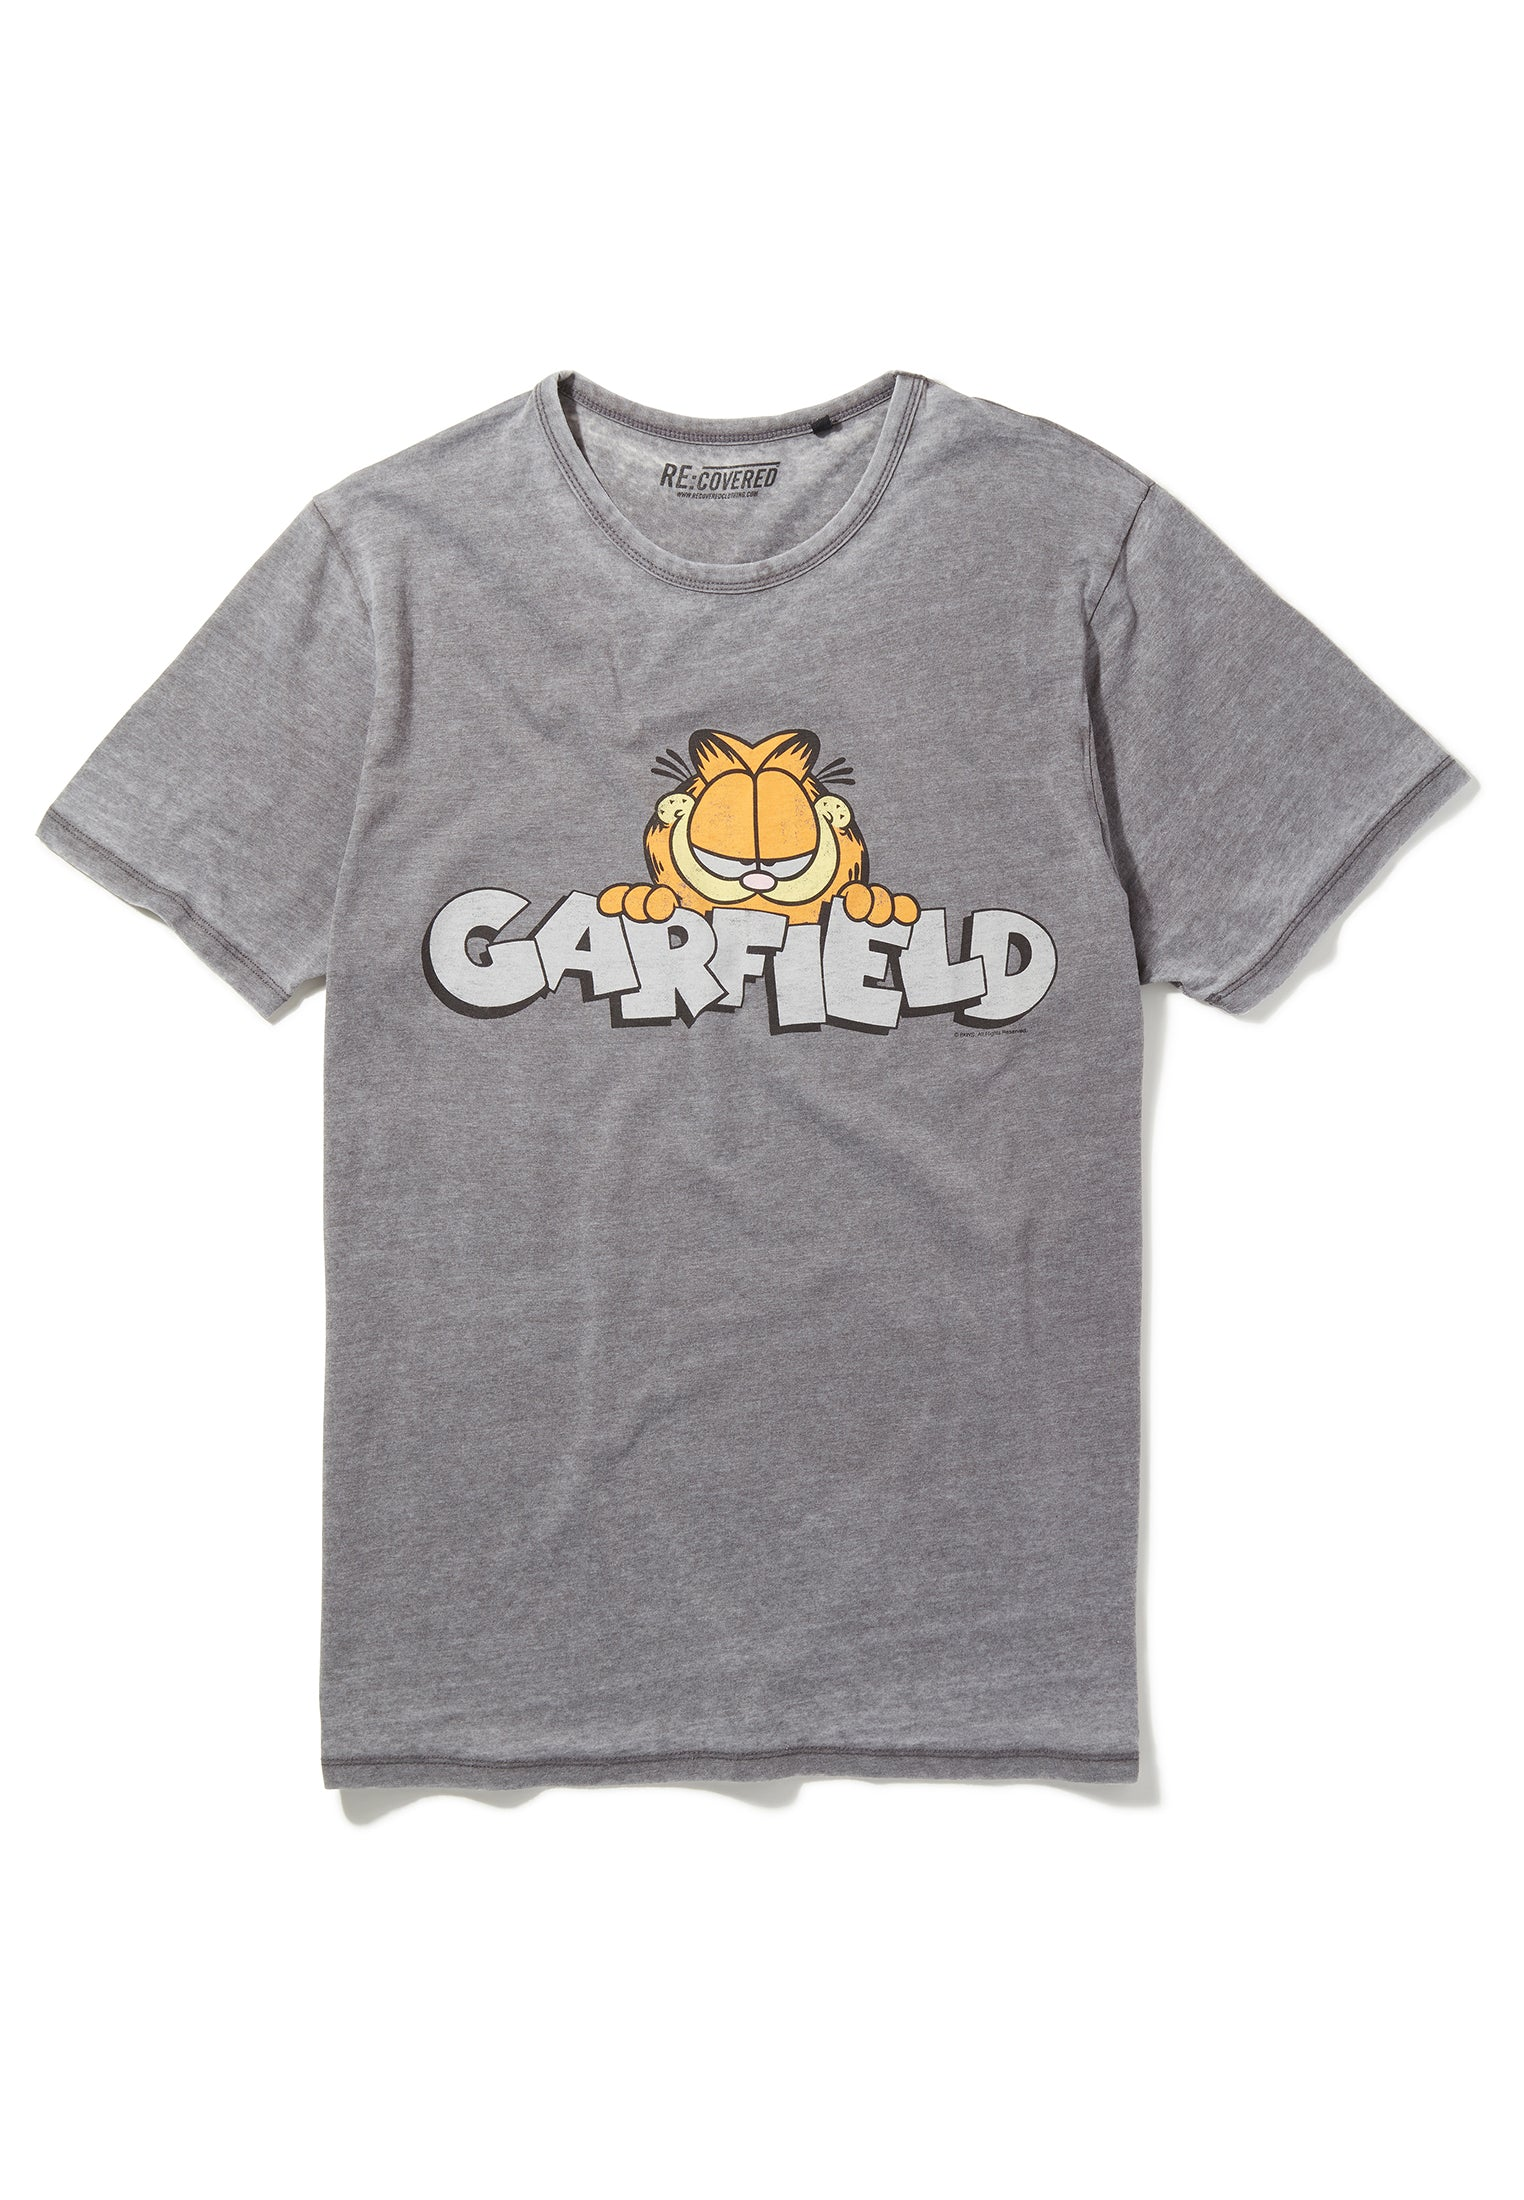 Recovered Garfield Vintage Peeking Logo Mid Grey T-Shirt